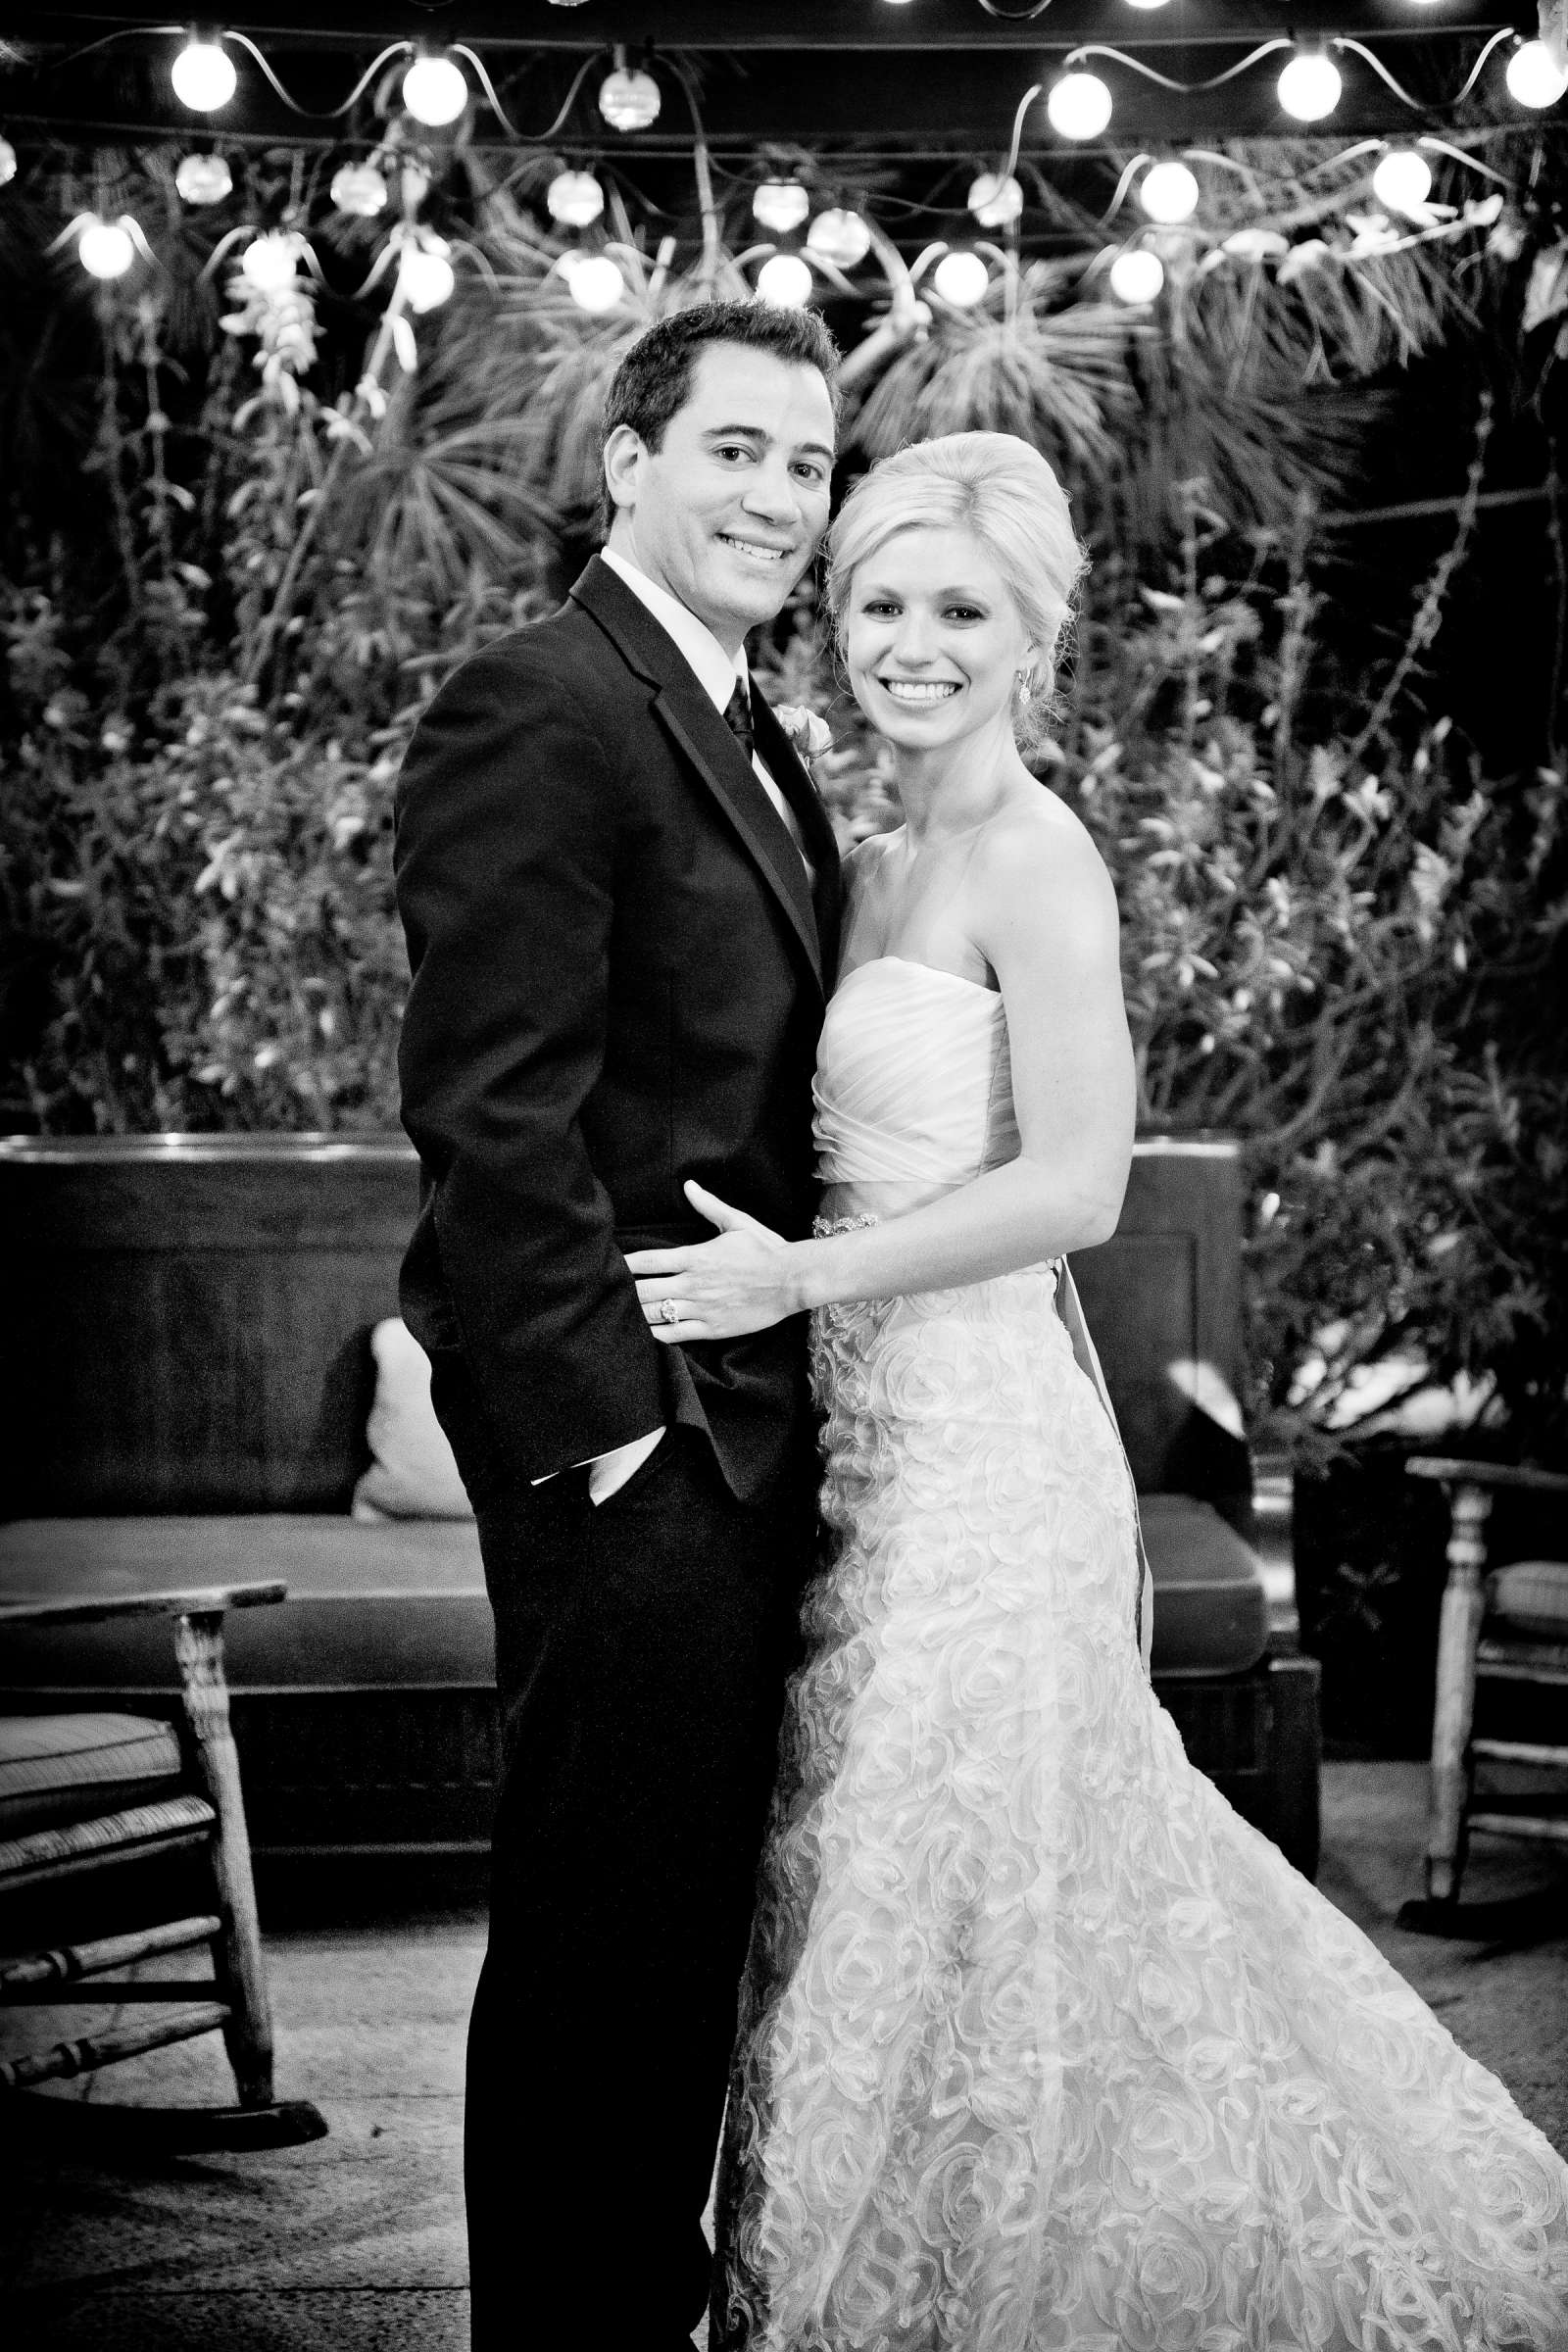 Estancia Wedding coordinated by Emily Smiley, Marissa and Danny Wedding Photo #52 by True Photography